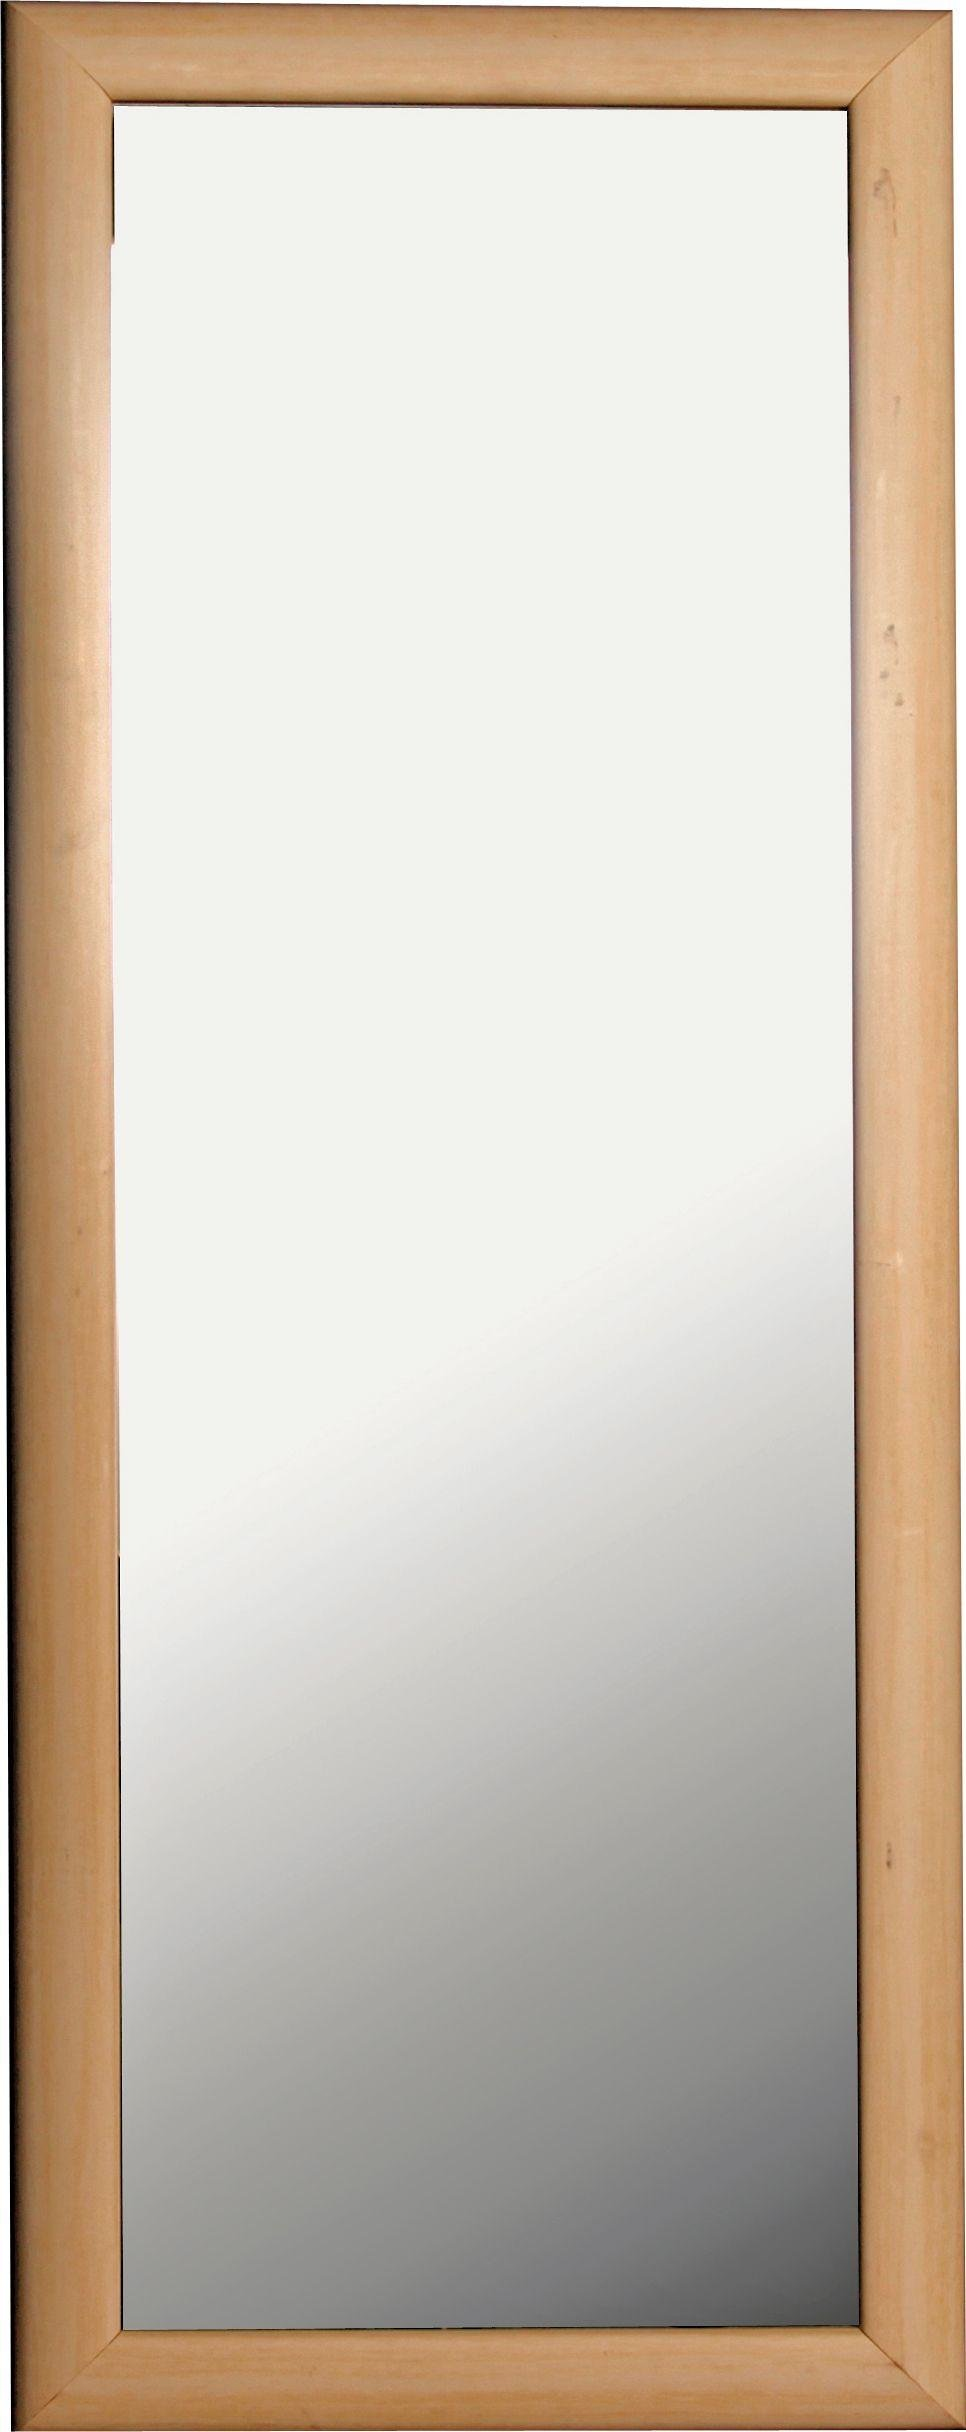 Tall Wall Mirror buy simple value tall framed wall mirror - pine effect at argos.co